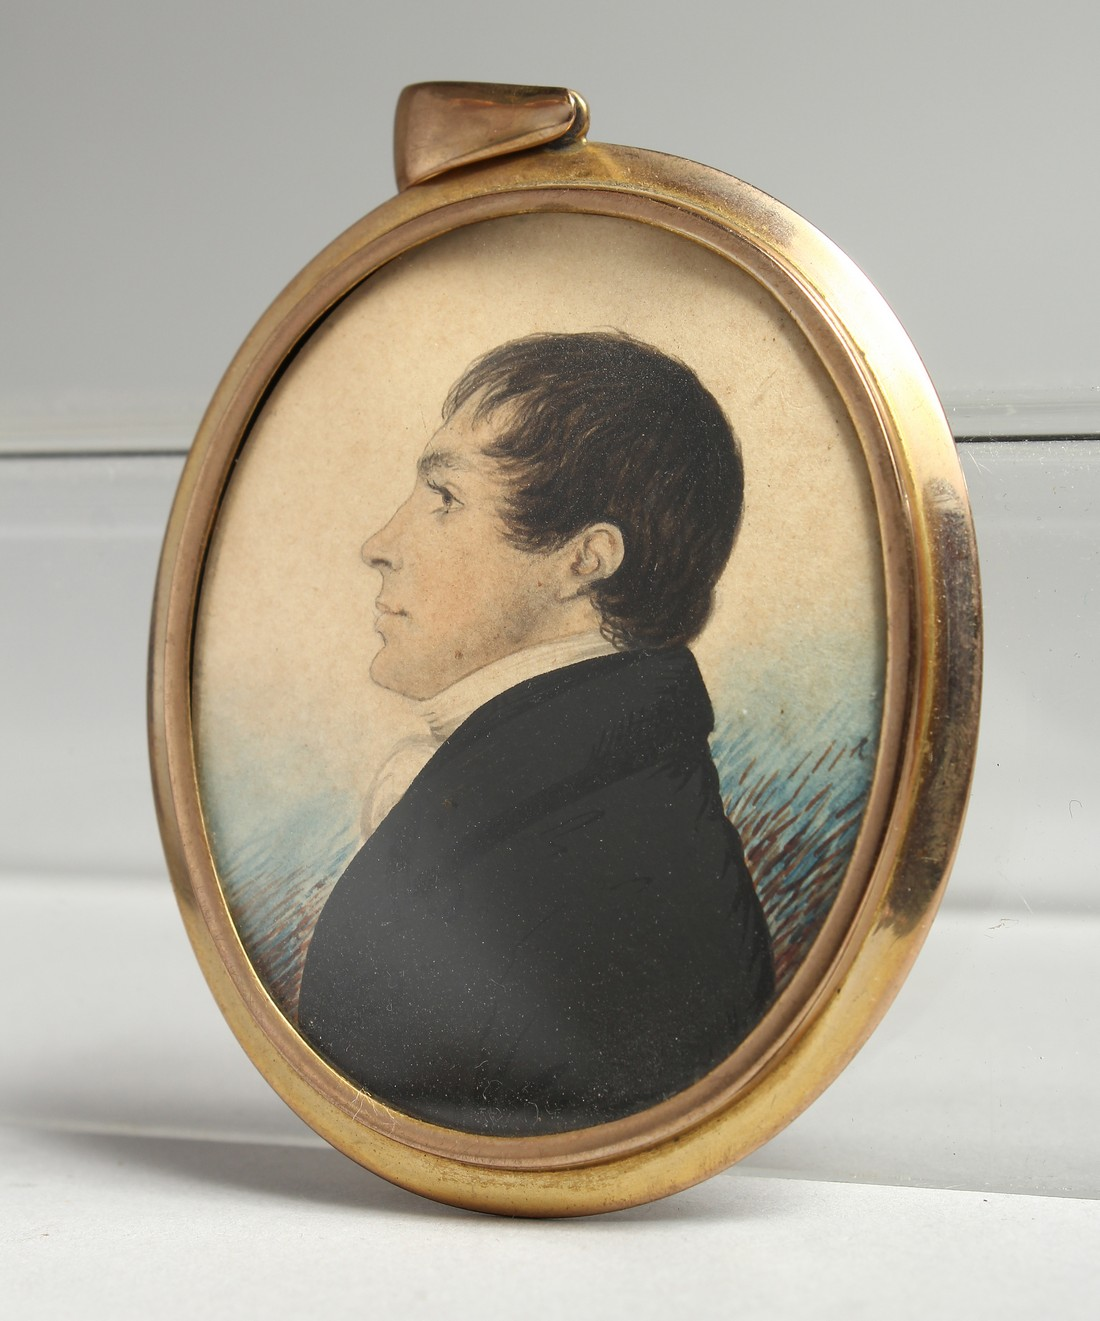 AN EARLY VICTORIAN OVAL MINIATURE OF A GENTLEMAN in a gilt frame. 2.25ins x 1.75ins